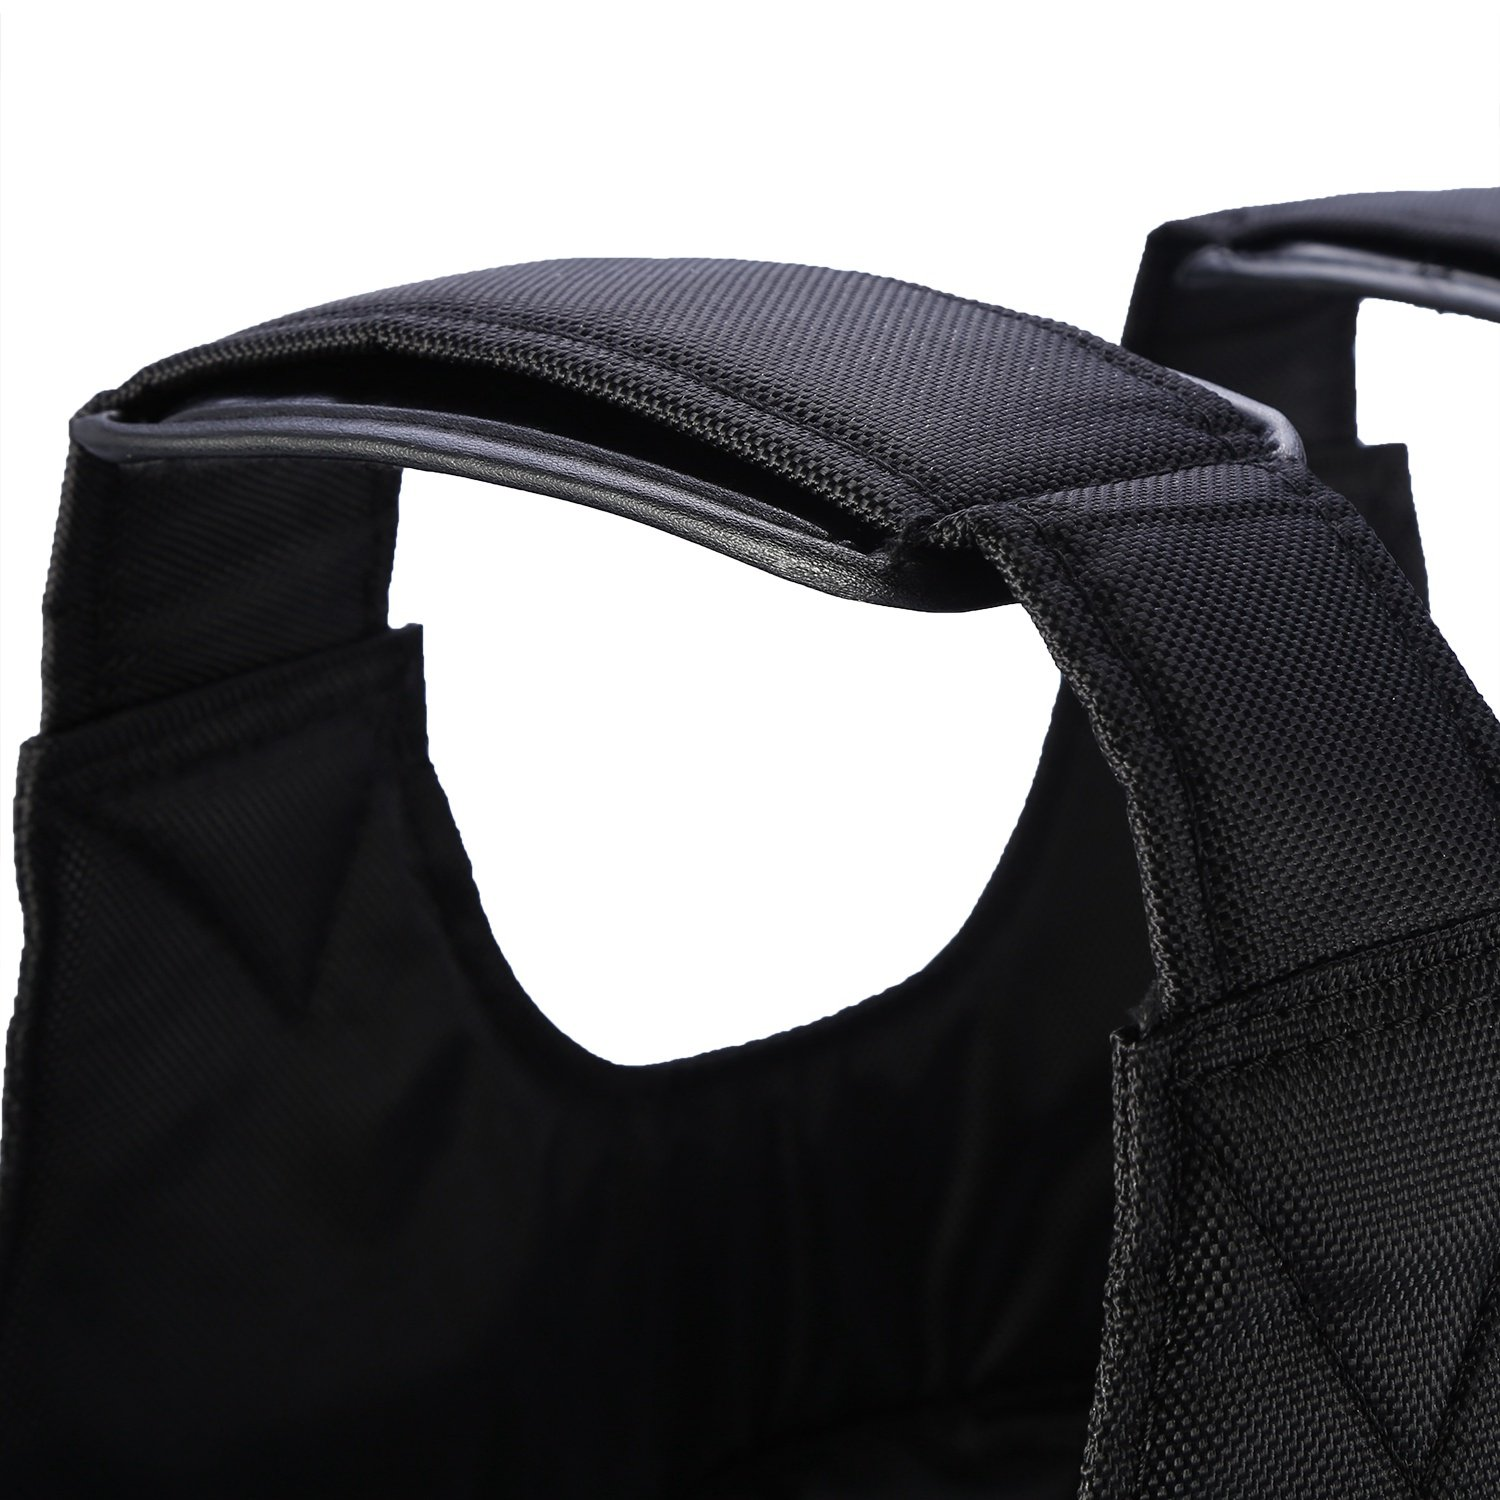 20KG Weight Jacket Training Weightloading Training Panciotto per Allenamento Boxe Fitness Running Weightlifting Training Powerlifting Cafopgrill Giubbotto appesantito